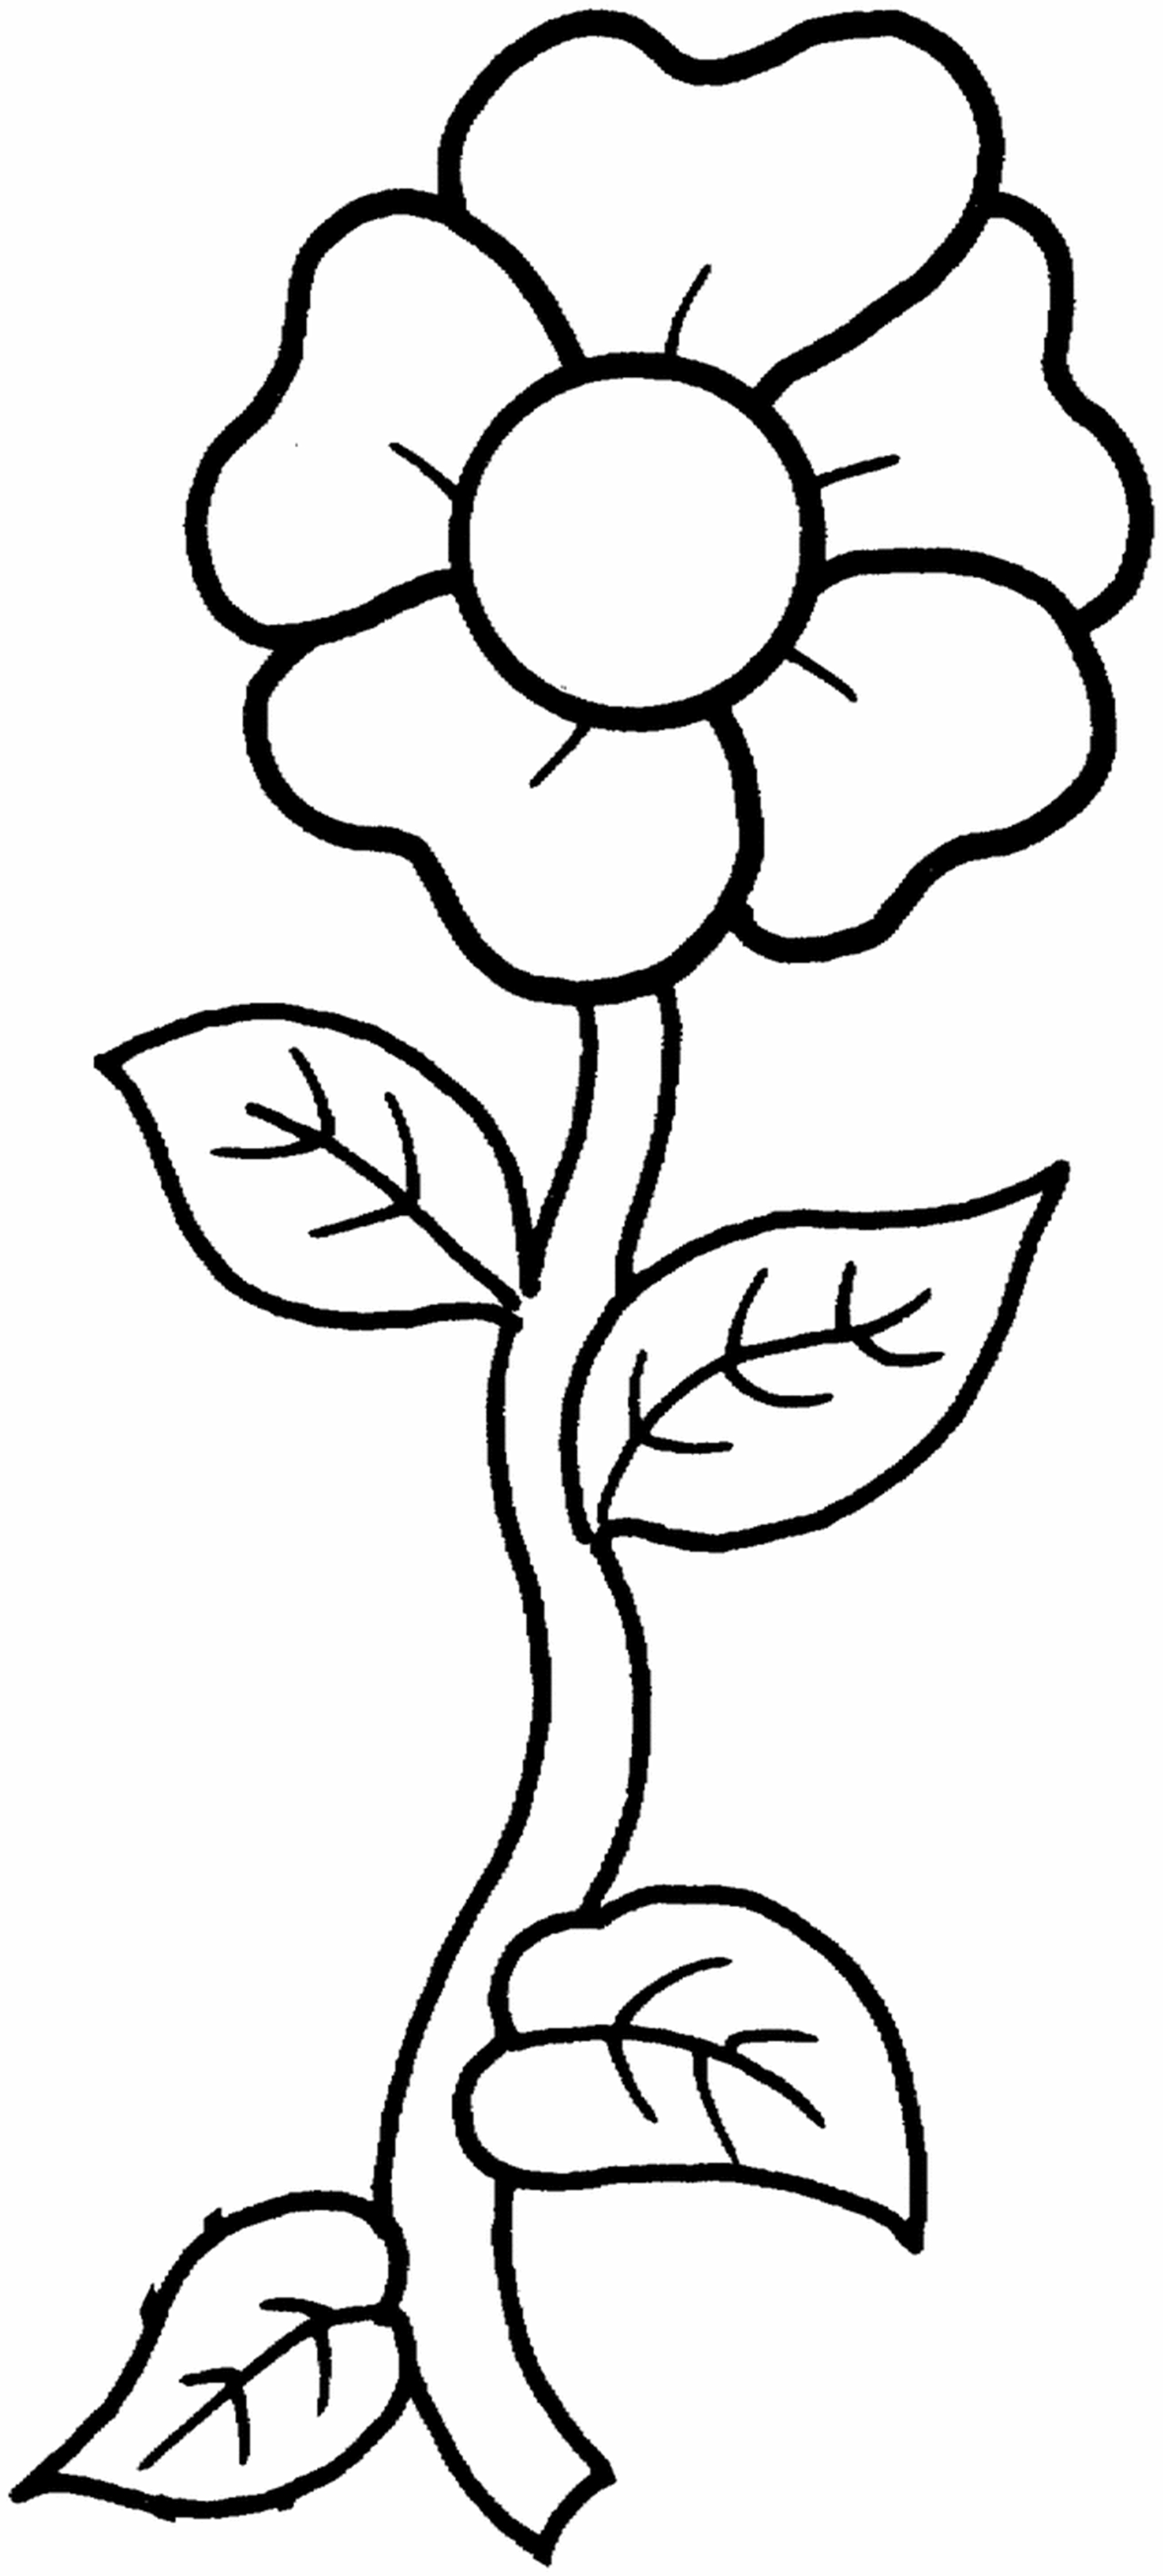 printable flower pictures clipart simple flower bw printable flower pictures